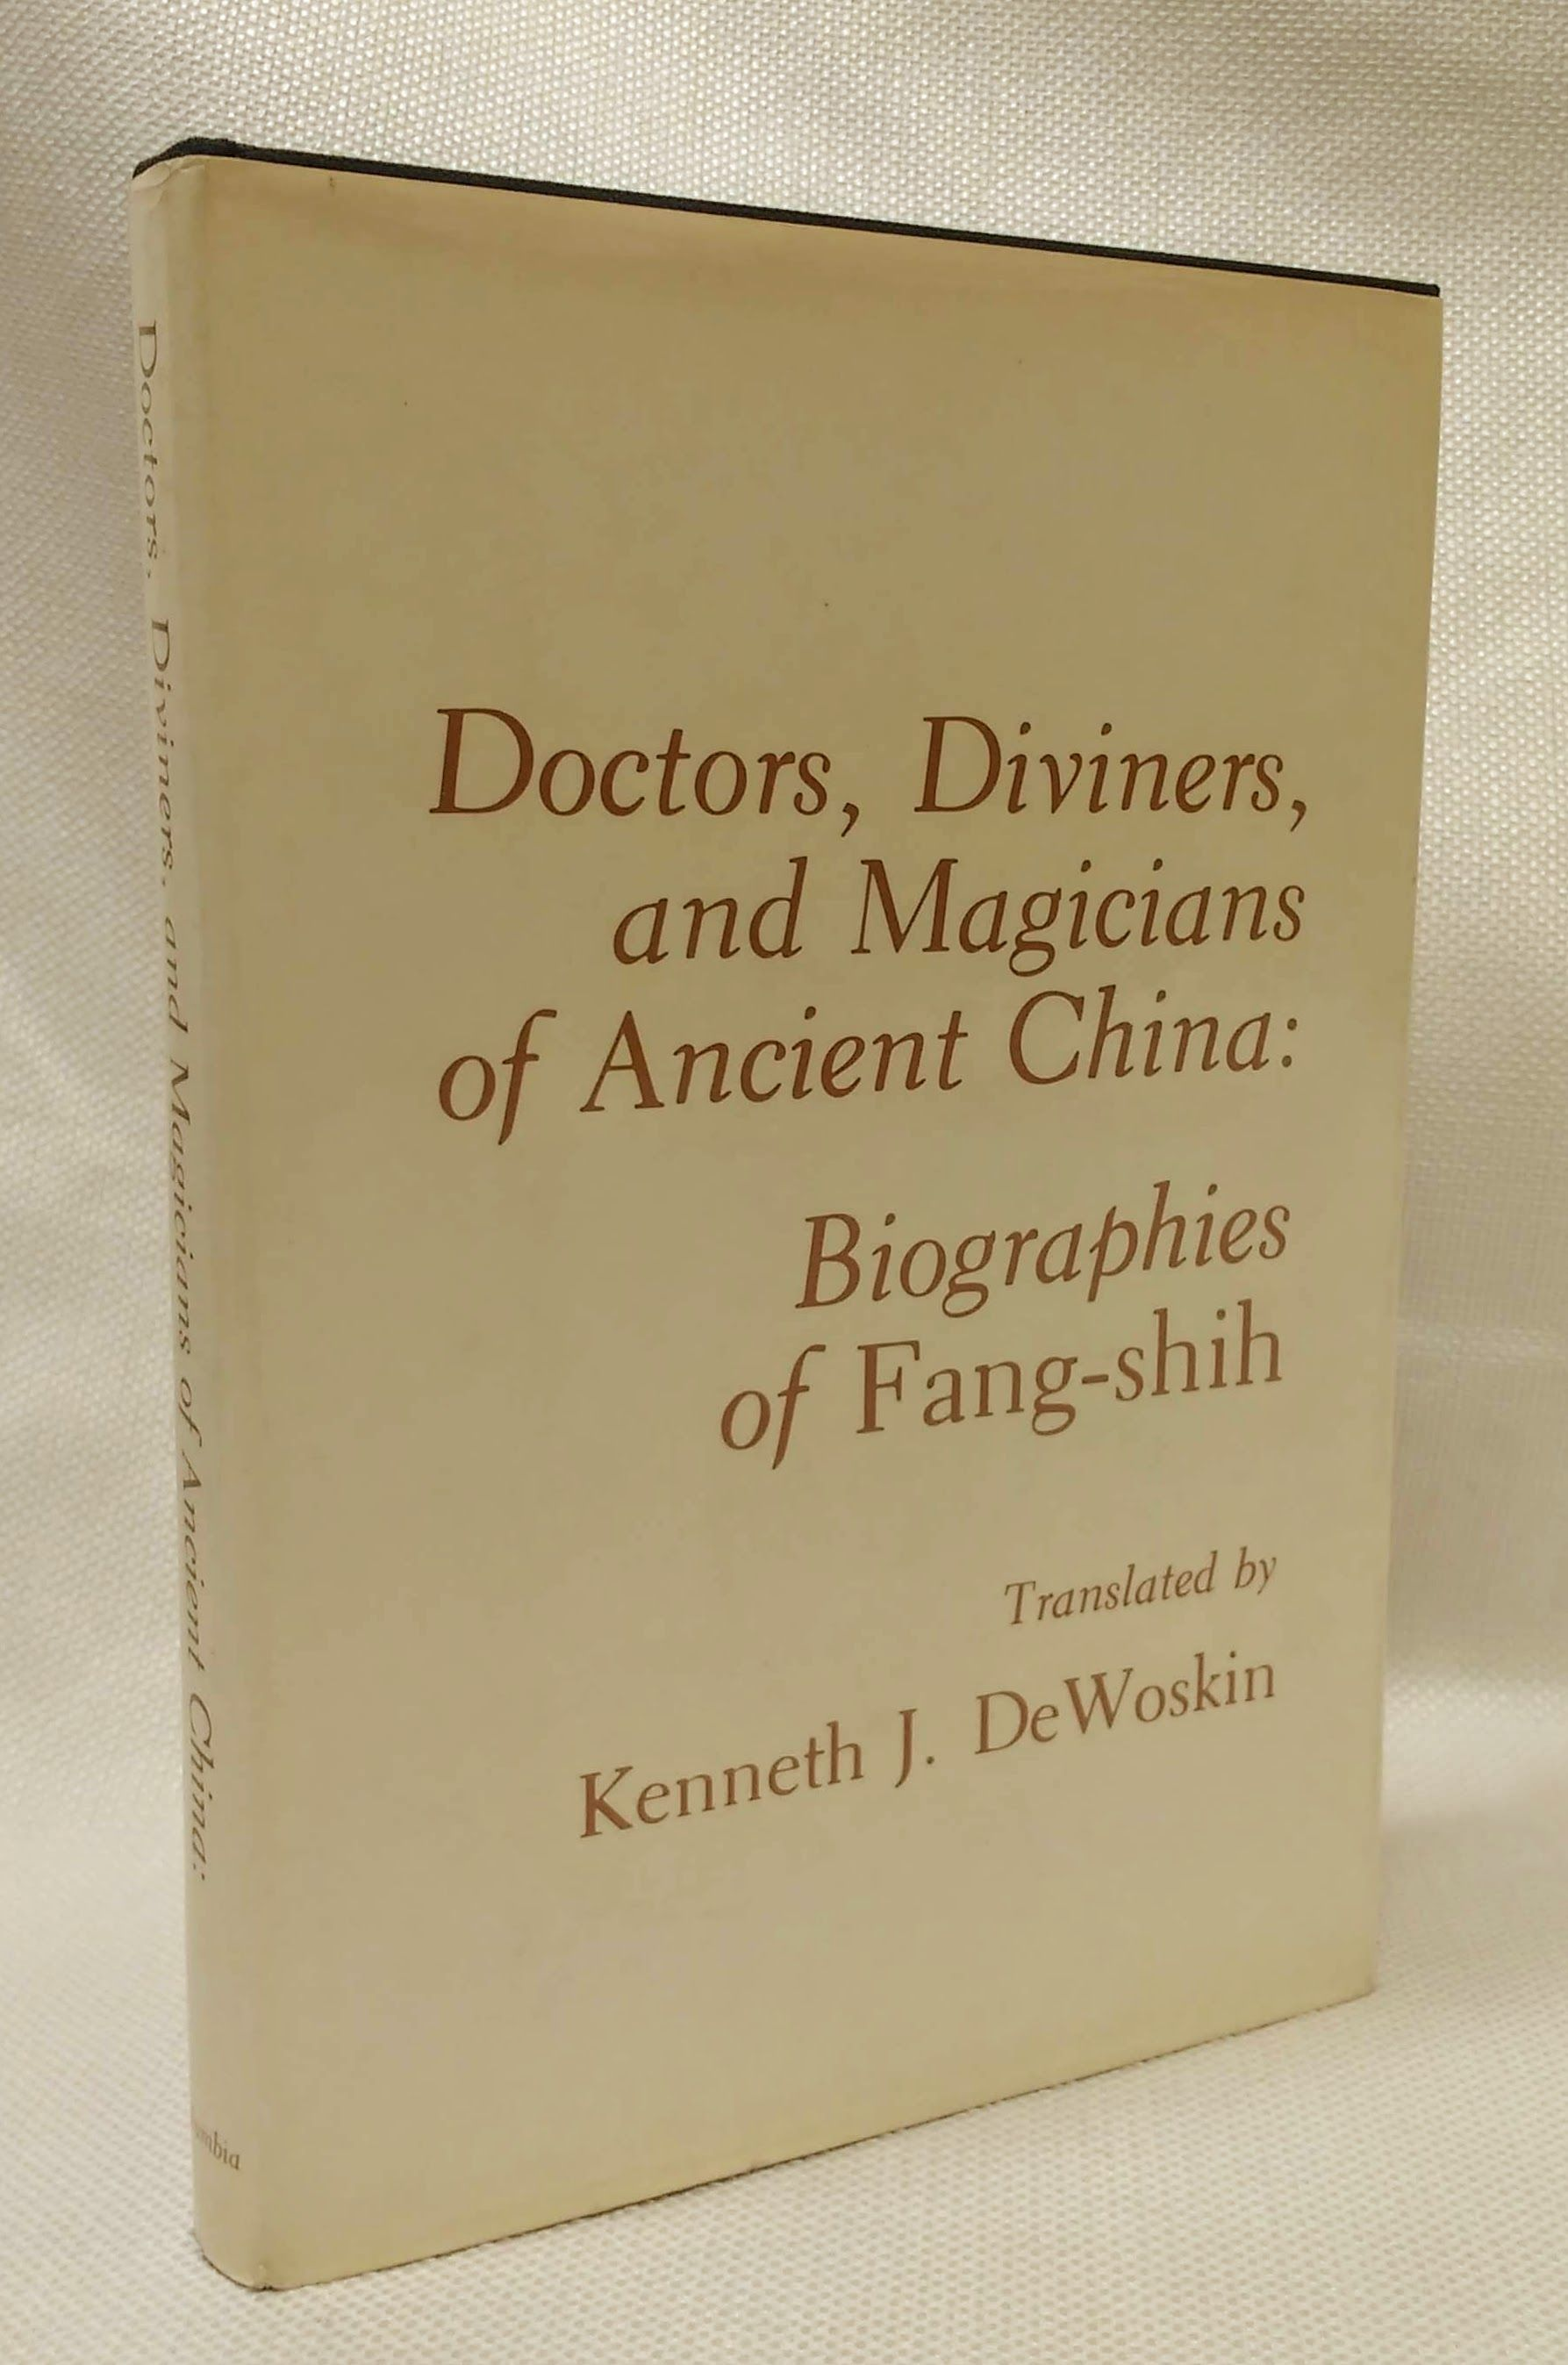 Doctors Diviners and Magicians of Ancient China : Biographies of Fang-shih, KJ DEWOSKIN [Translator]